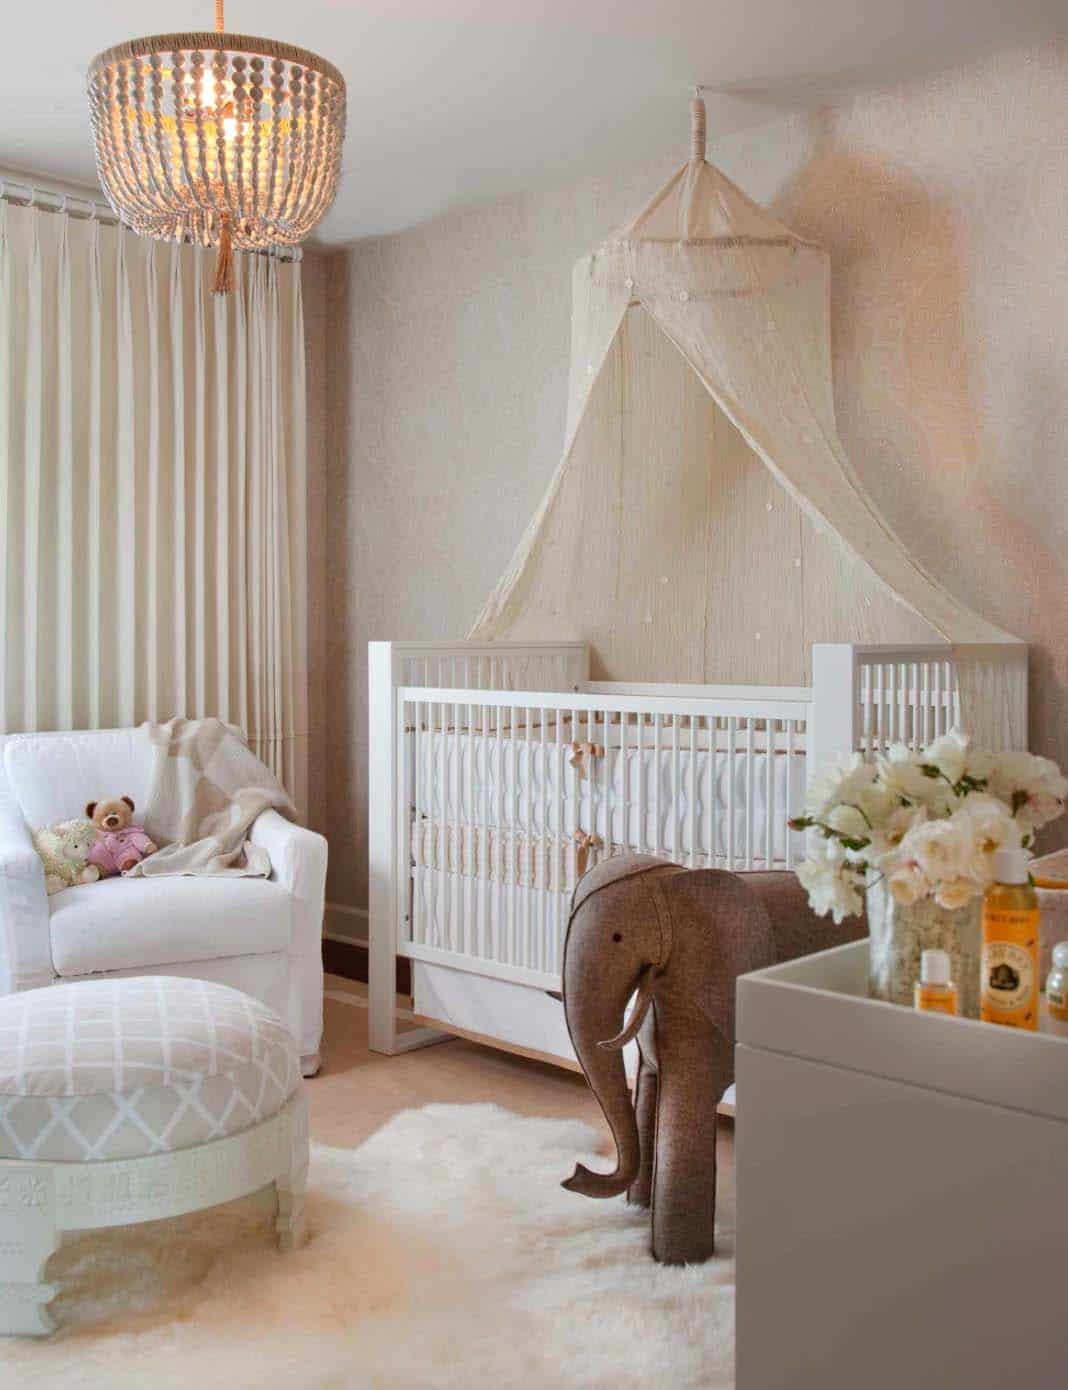 Stylish Nursery Decorating Ideas-03-1 Kindesign